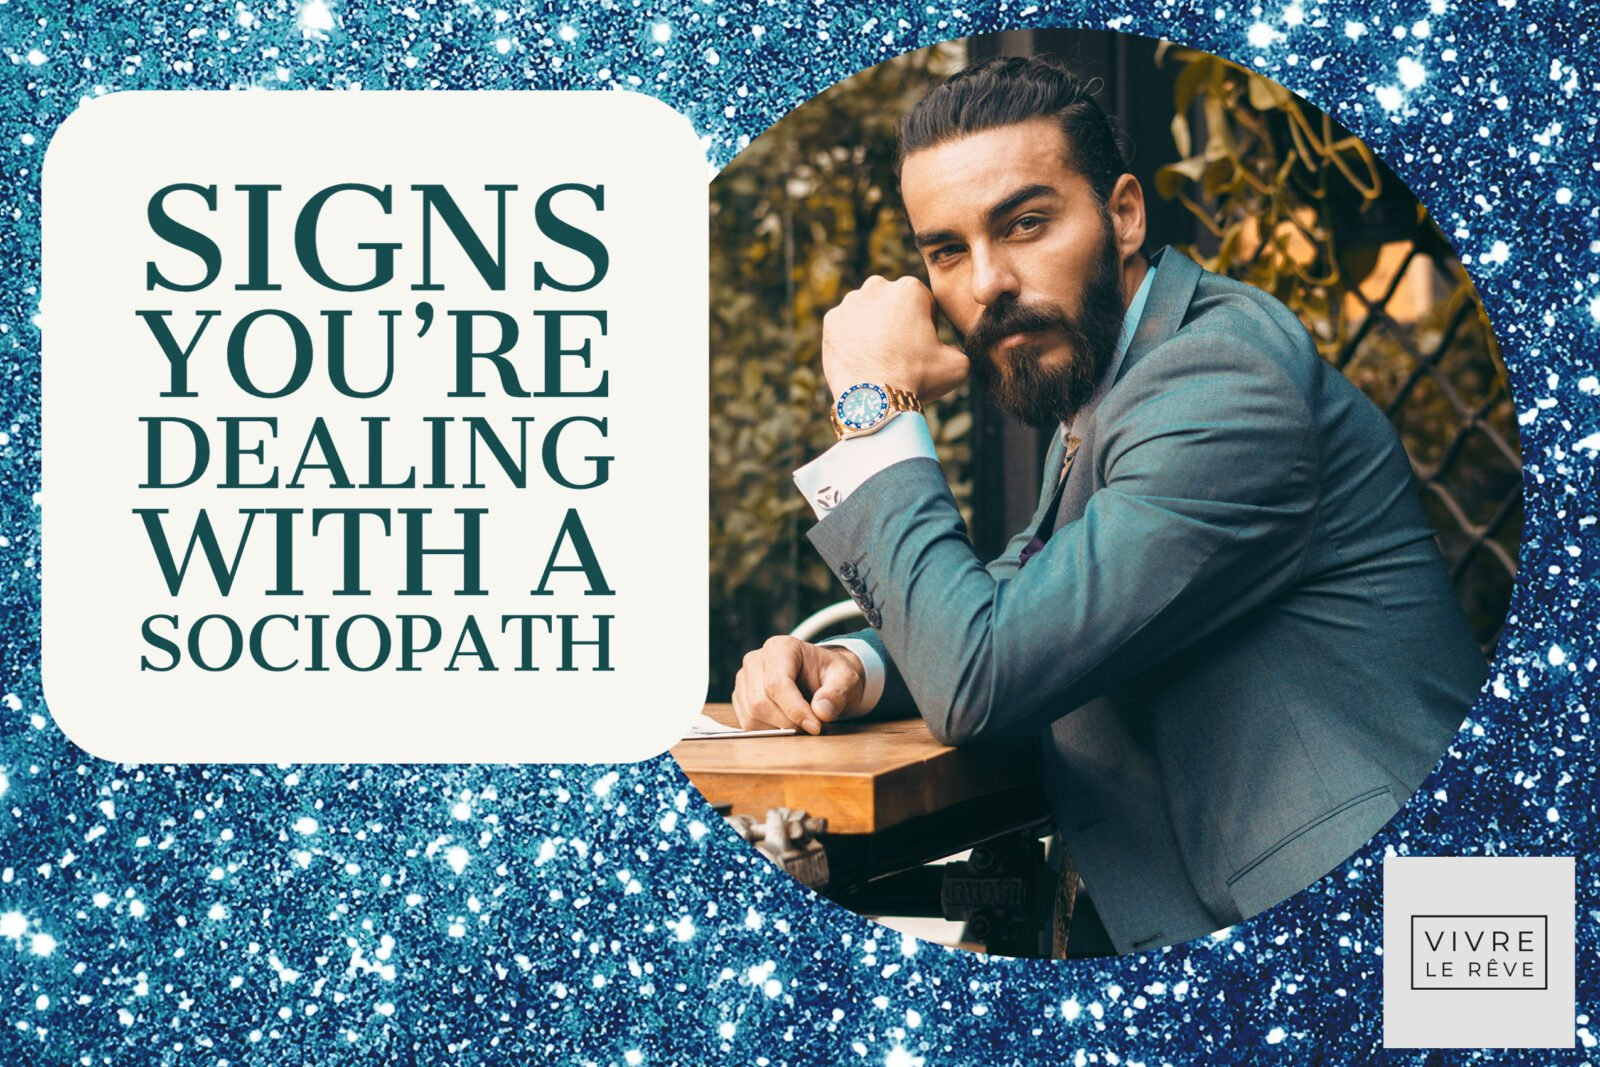 Signs You're Dealing With a Sociopath